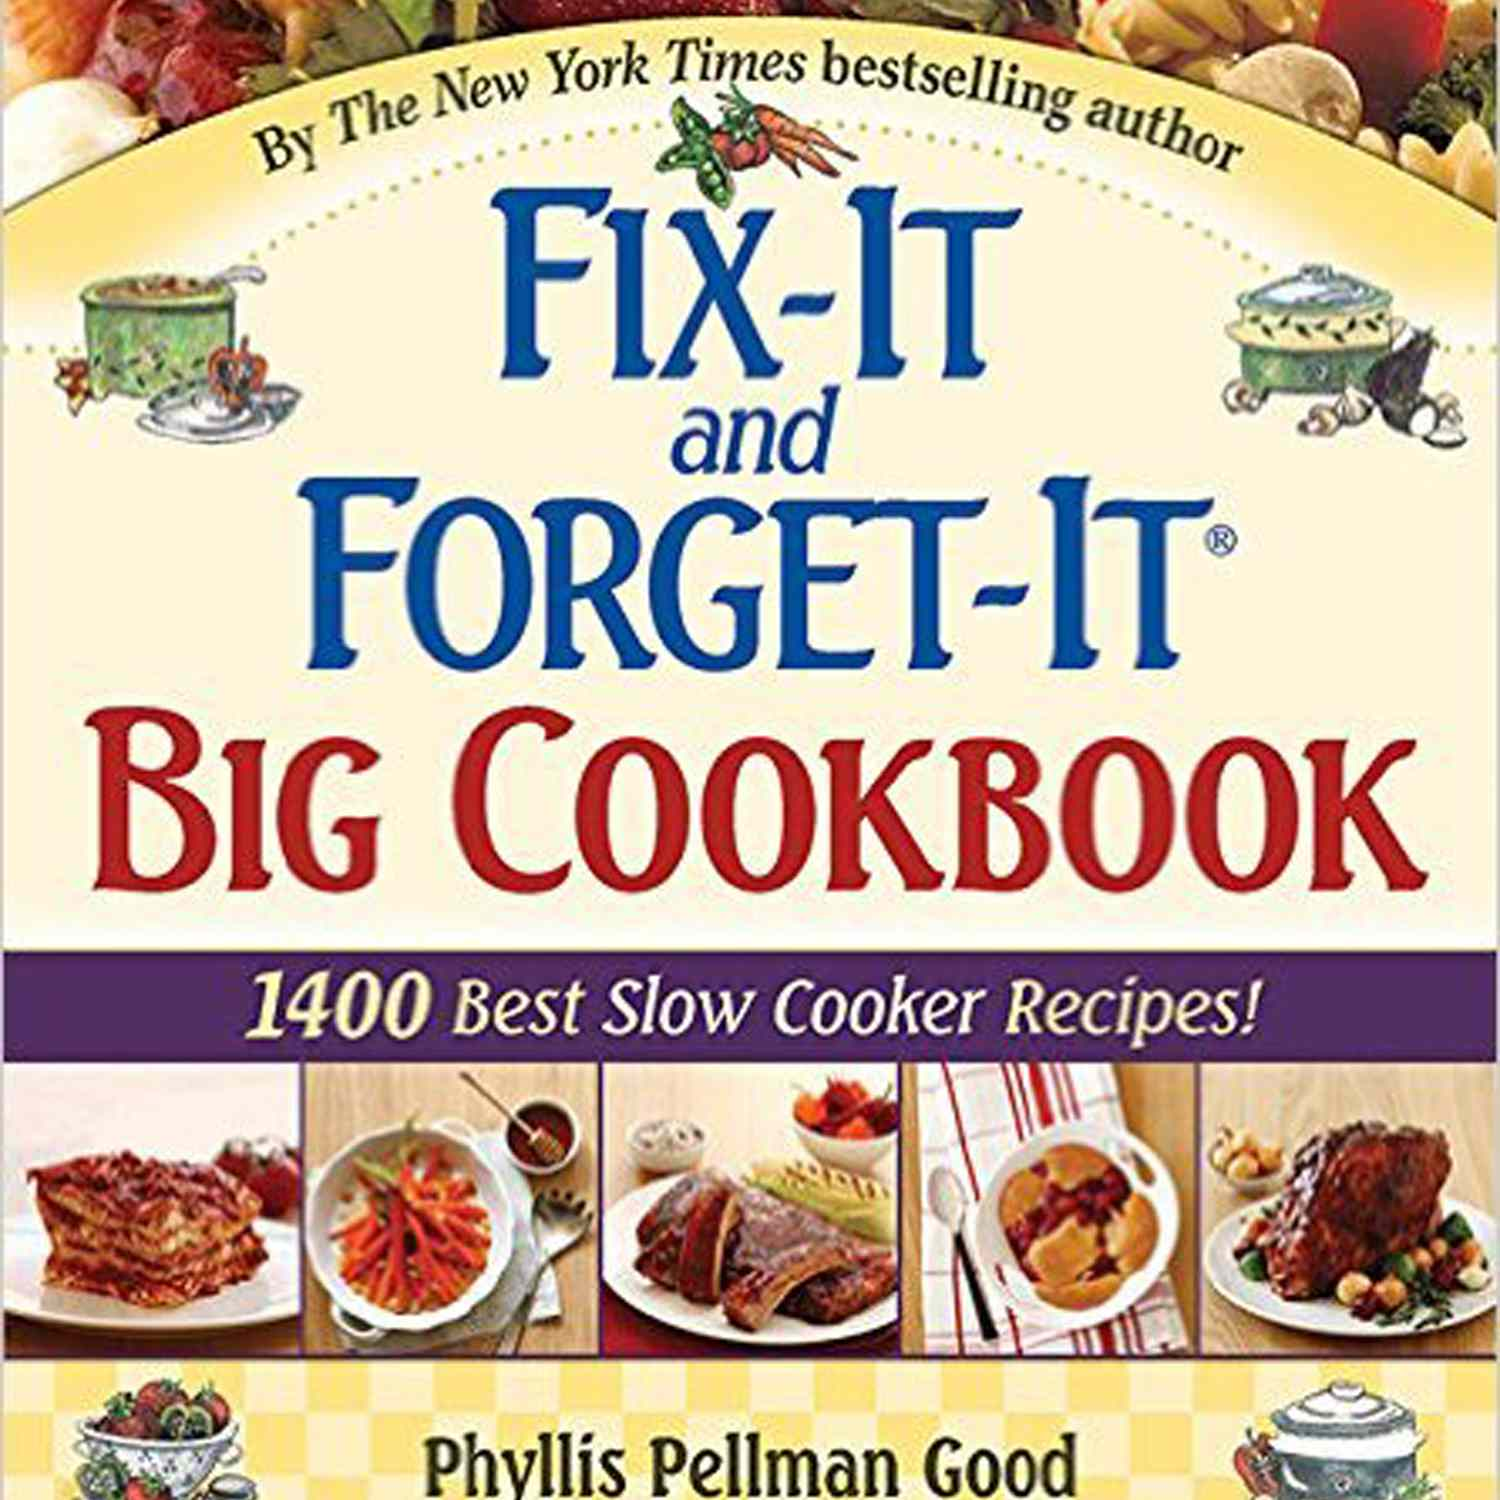 the big book of barbecueing and grilling 365 healthy and delicious recipes the big book series